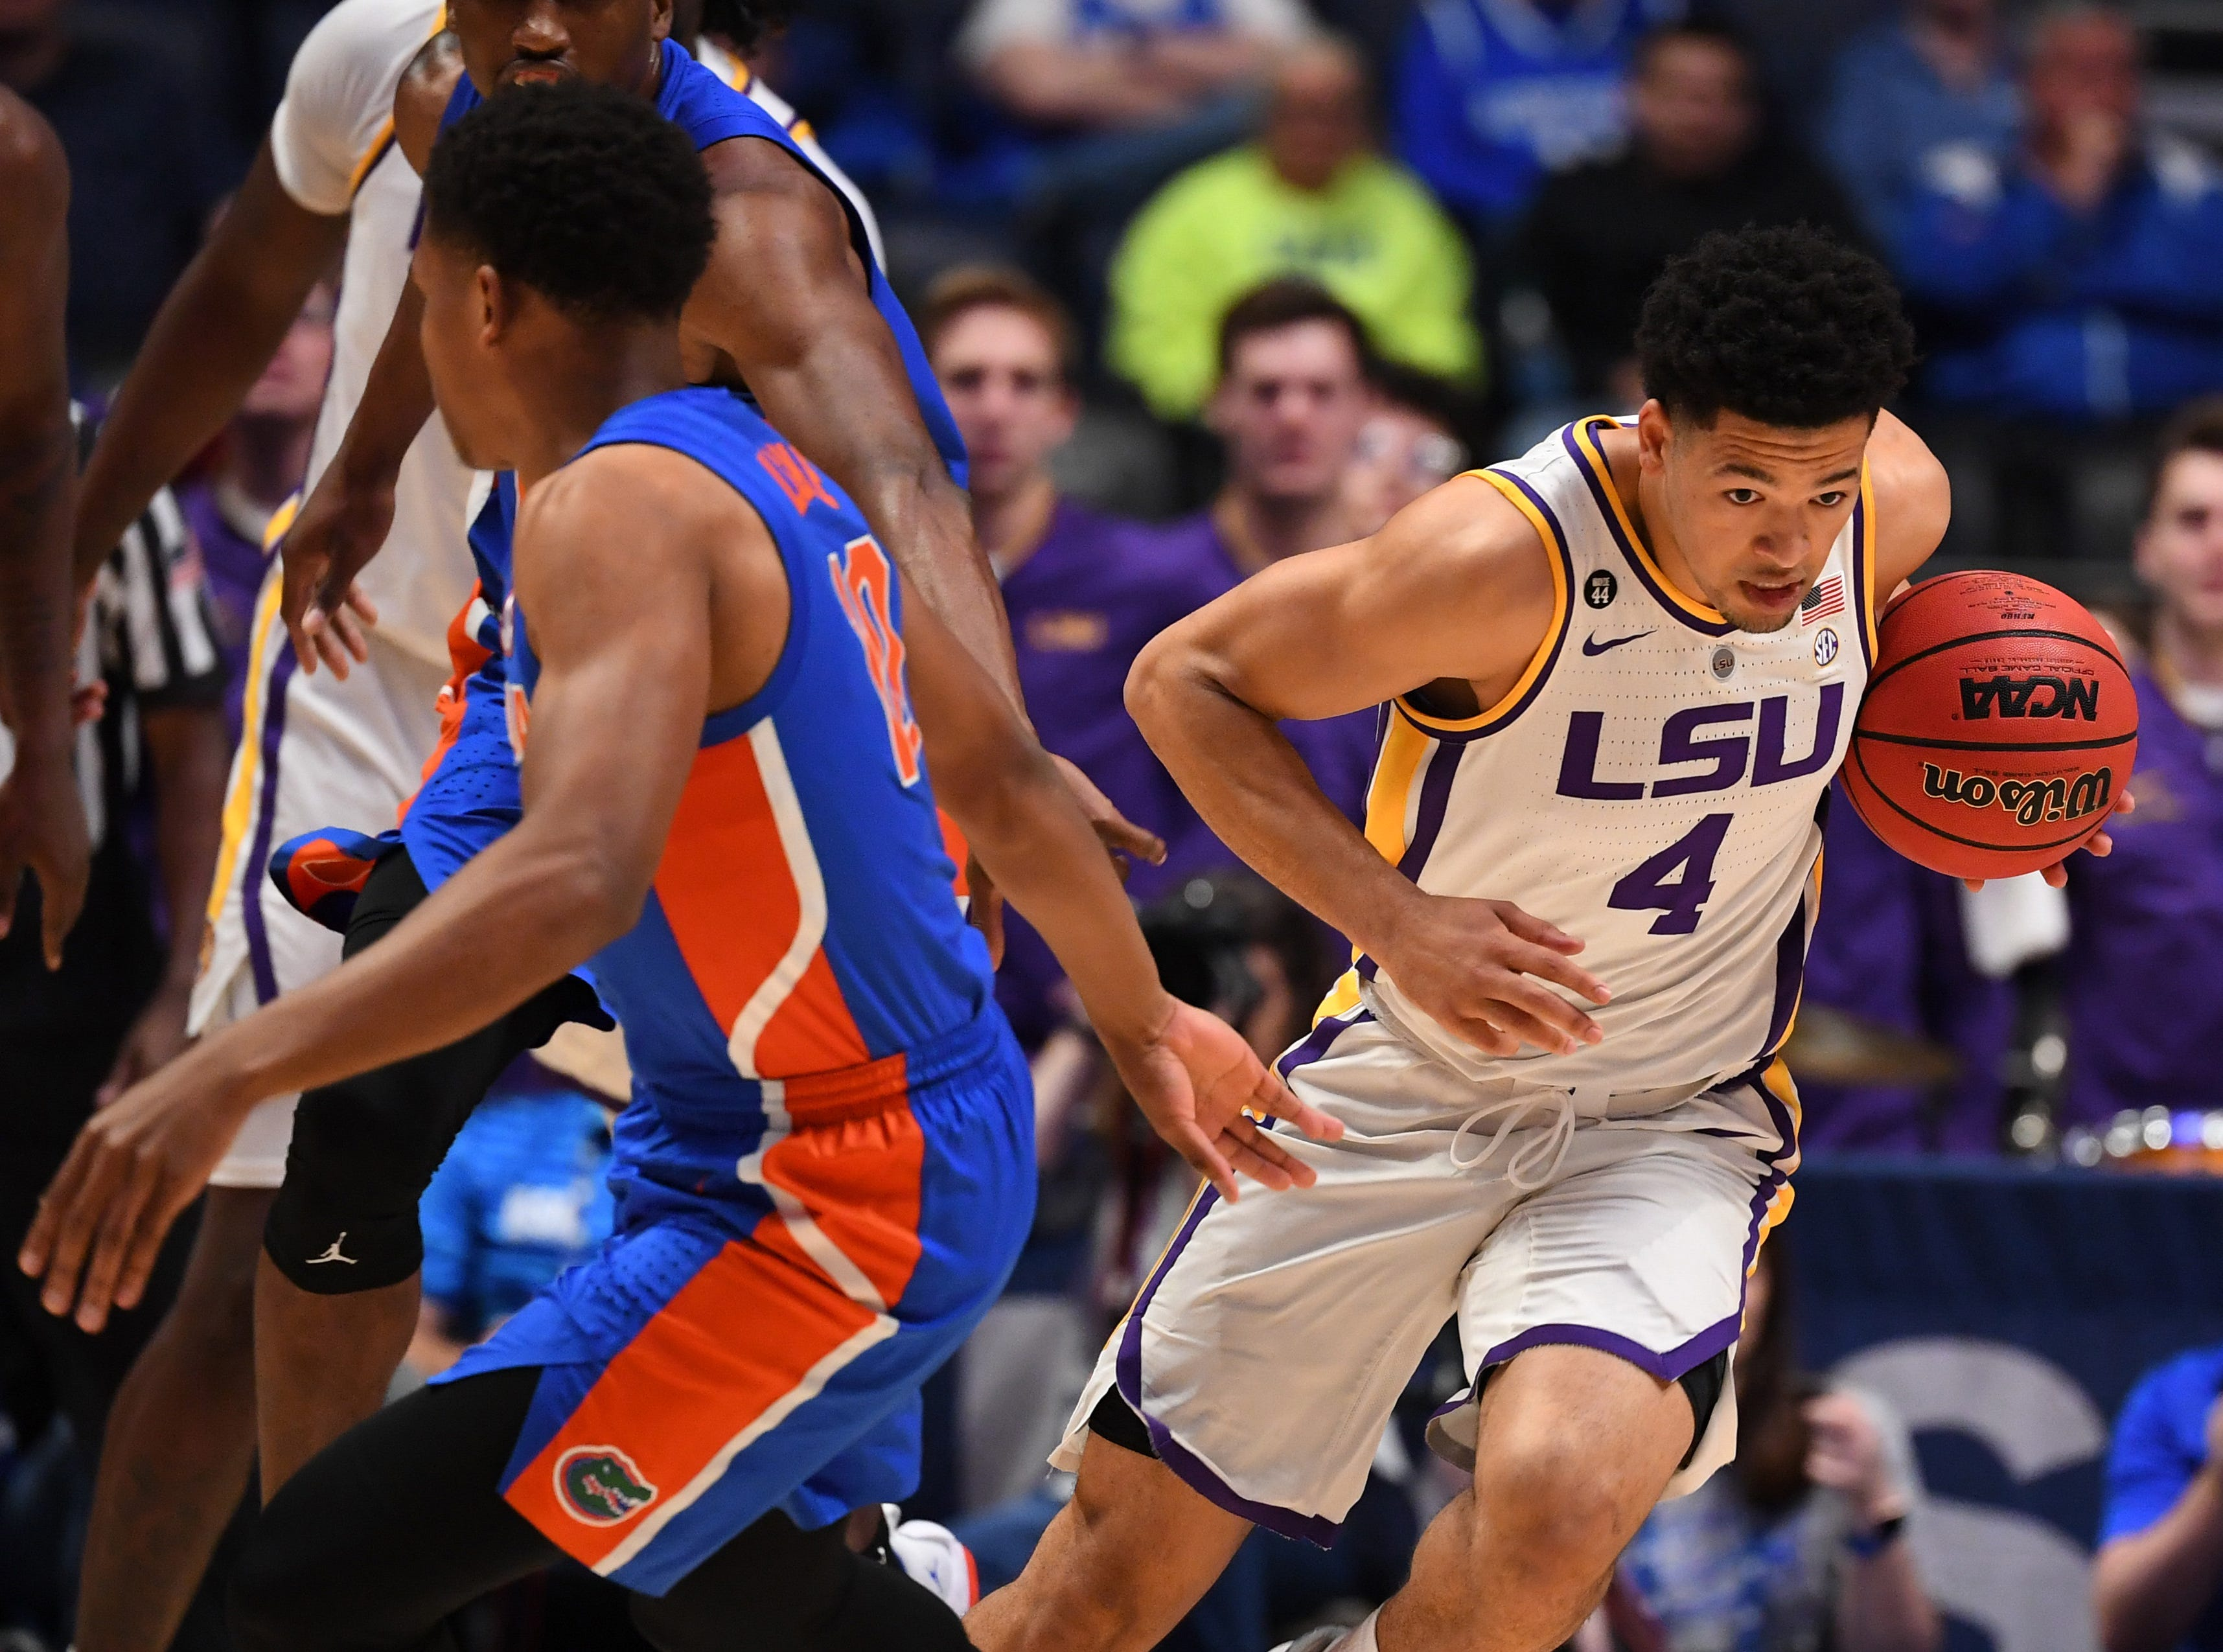 Mar 15, 2019; Nashville, TN, USA; LSU Tigers guard Skylar Mays (4) steals the ball against the Florida Gators during the first half of the SEC conference tournament at Bridgestone Arena. Mandatory Credit: Christopher Hanewinckel-USA TODAY Sports